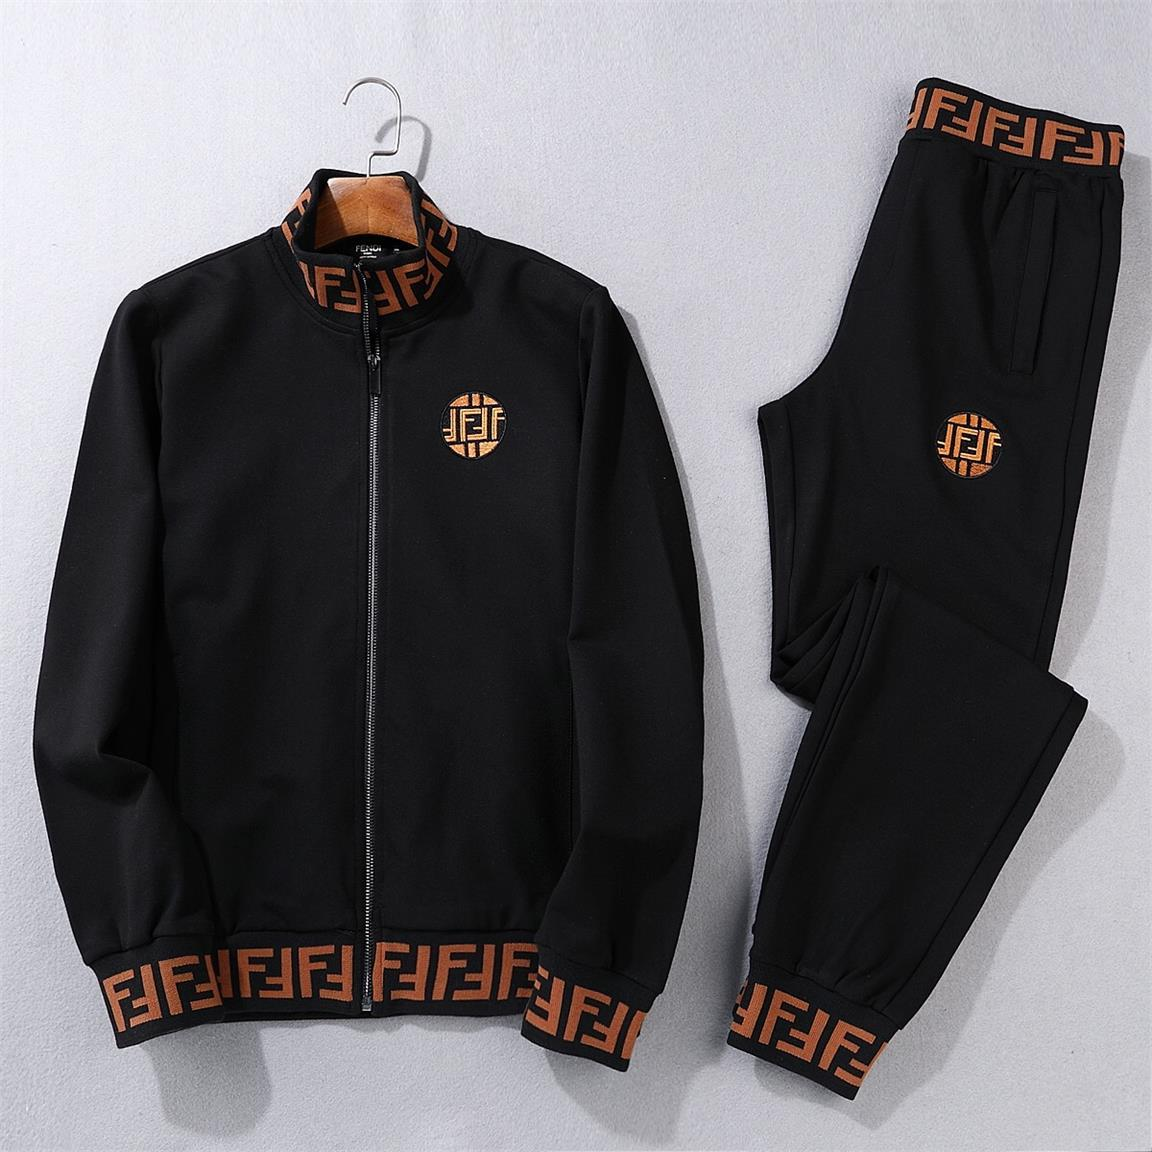 2020 Mens Casual Tracksuits Letter Print Jogger Fit Suits Pollover Pants Outfits.y3